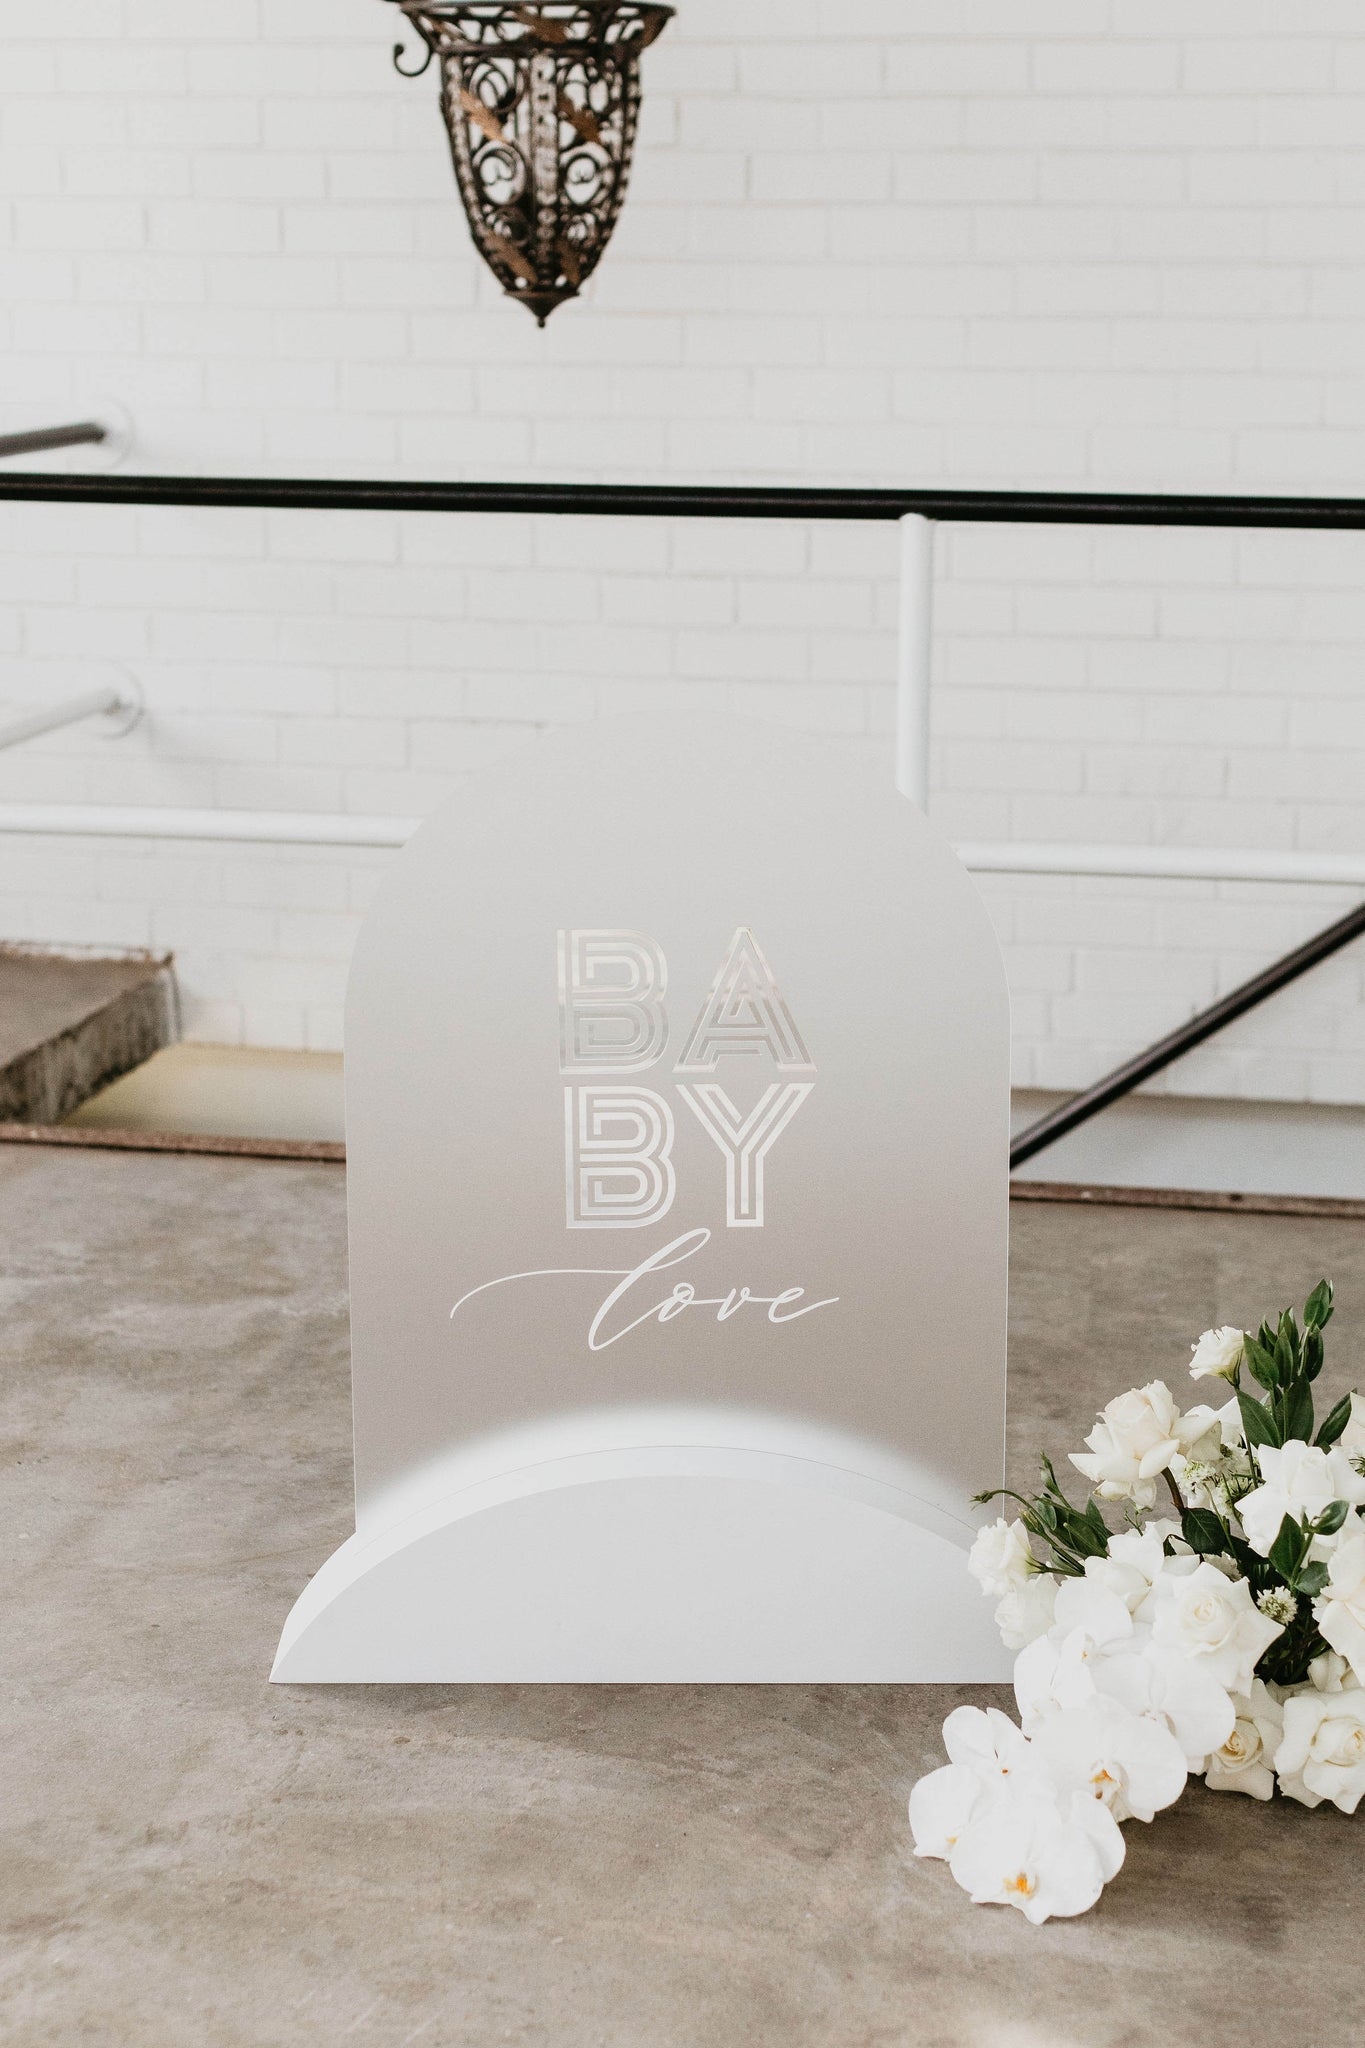 Baby love Baby shower sign arch clear frost acrylic